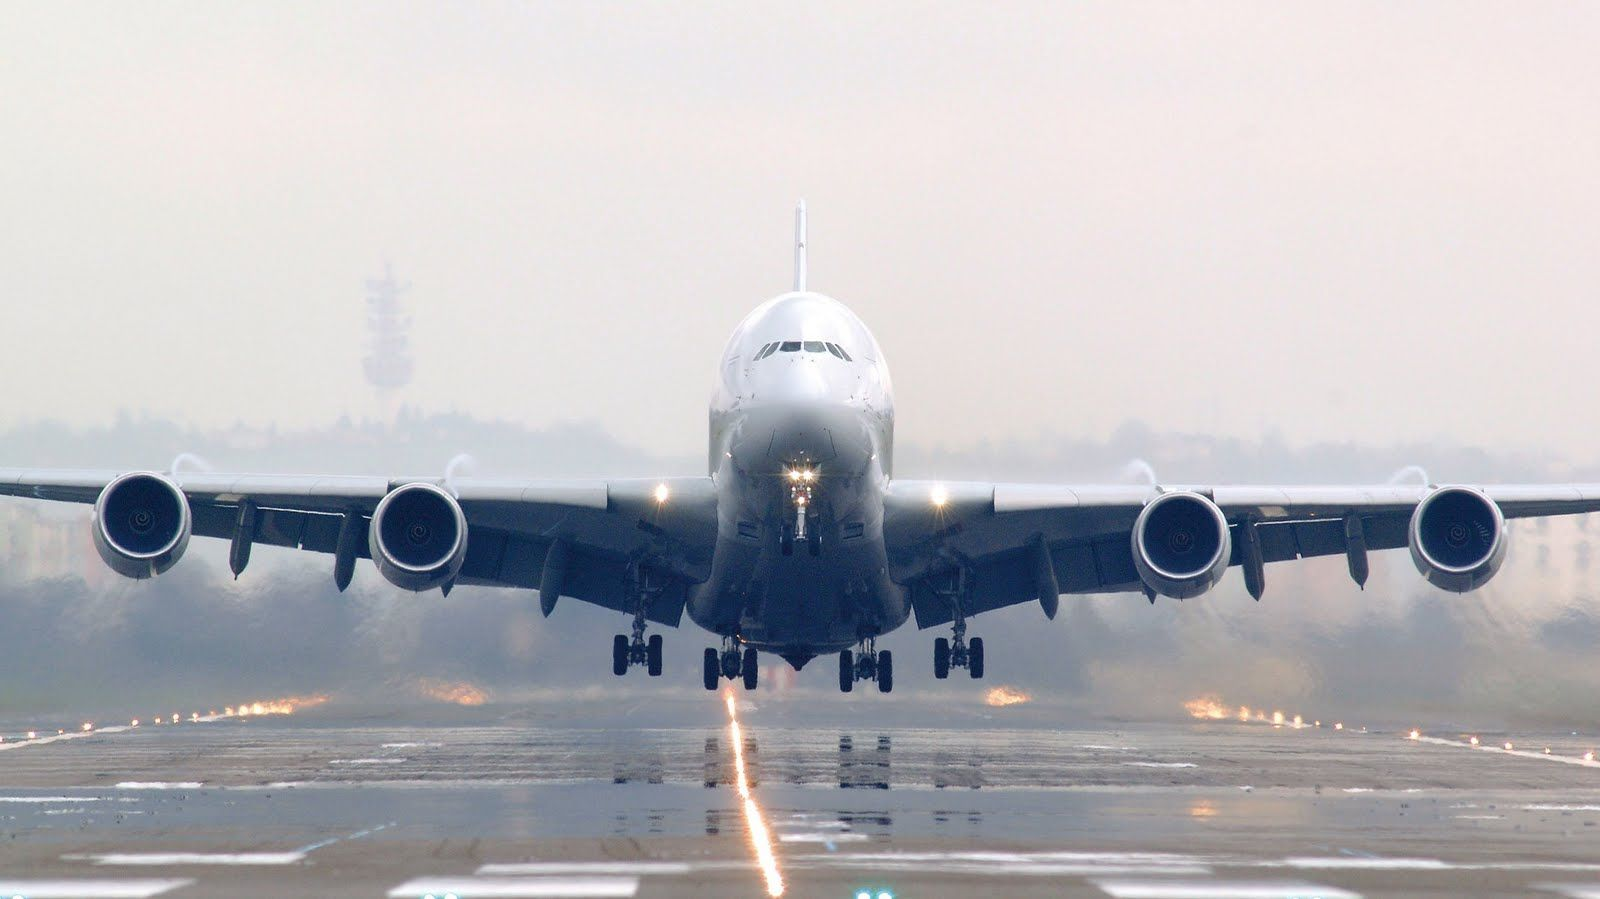 air-france a380 taking off | airbus a380 | pinterest | airbus a380